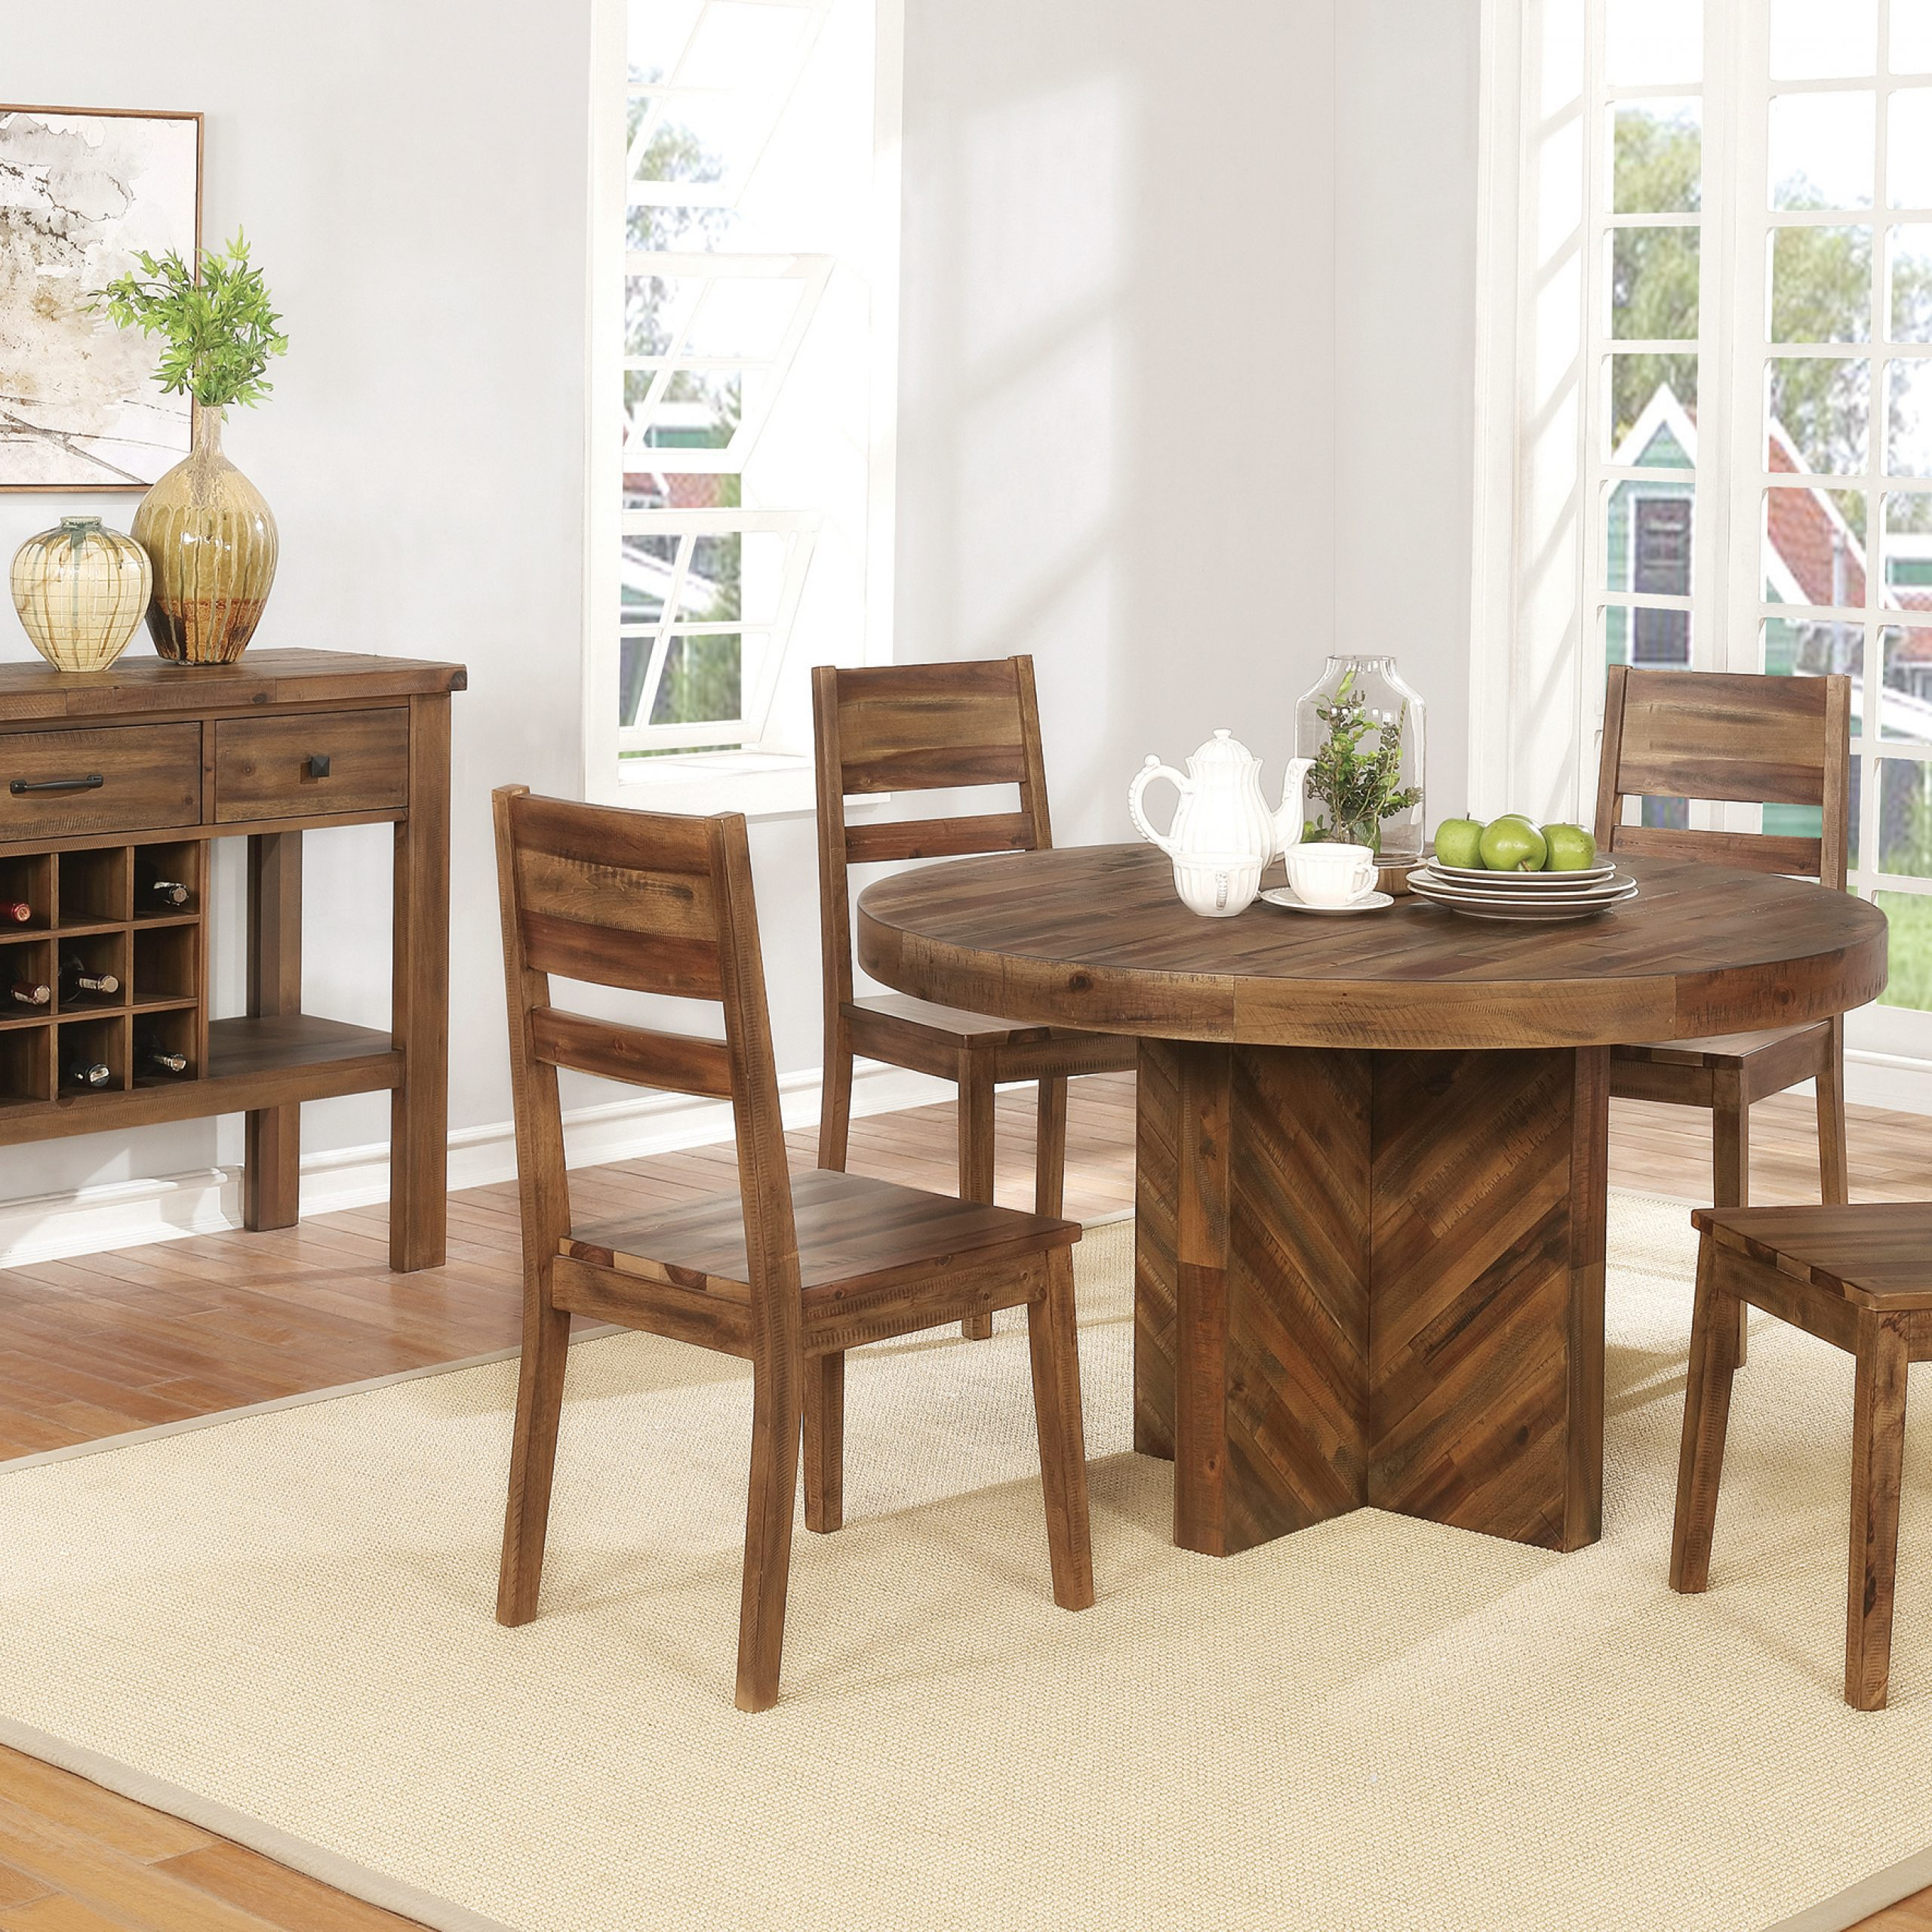 Coaster Contemporary 6 Seating Rectangular Casual Dining Tables In Most Recently Released Tucson Round Dining Table Varied Natural – Coaster Fine (View 6 of 30)